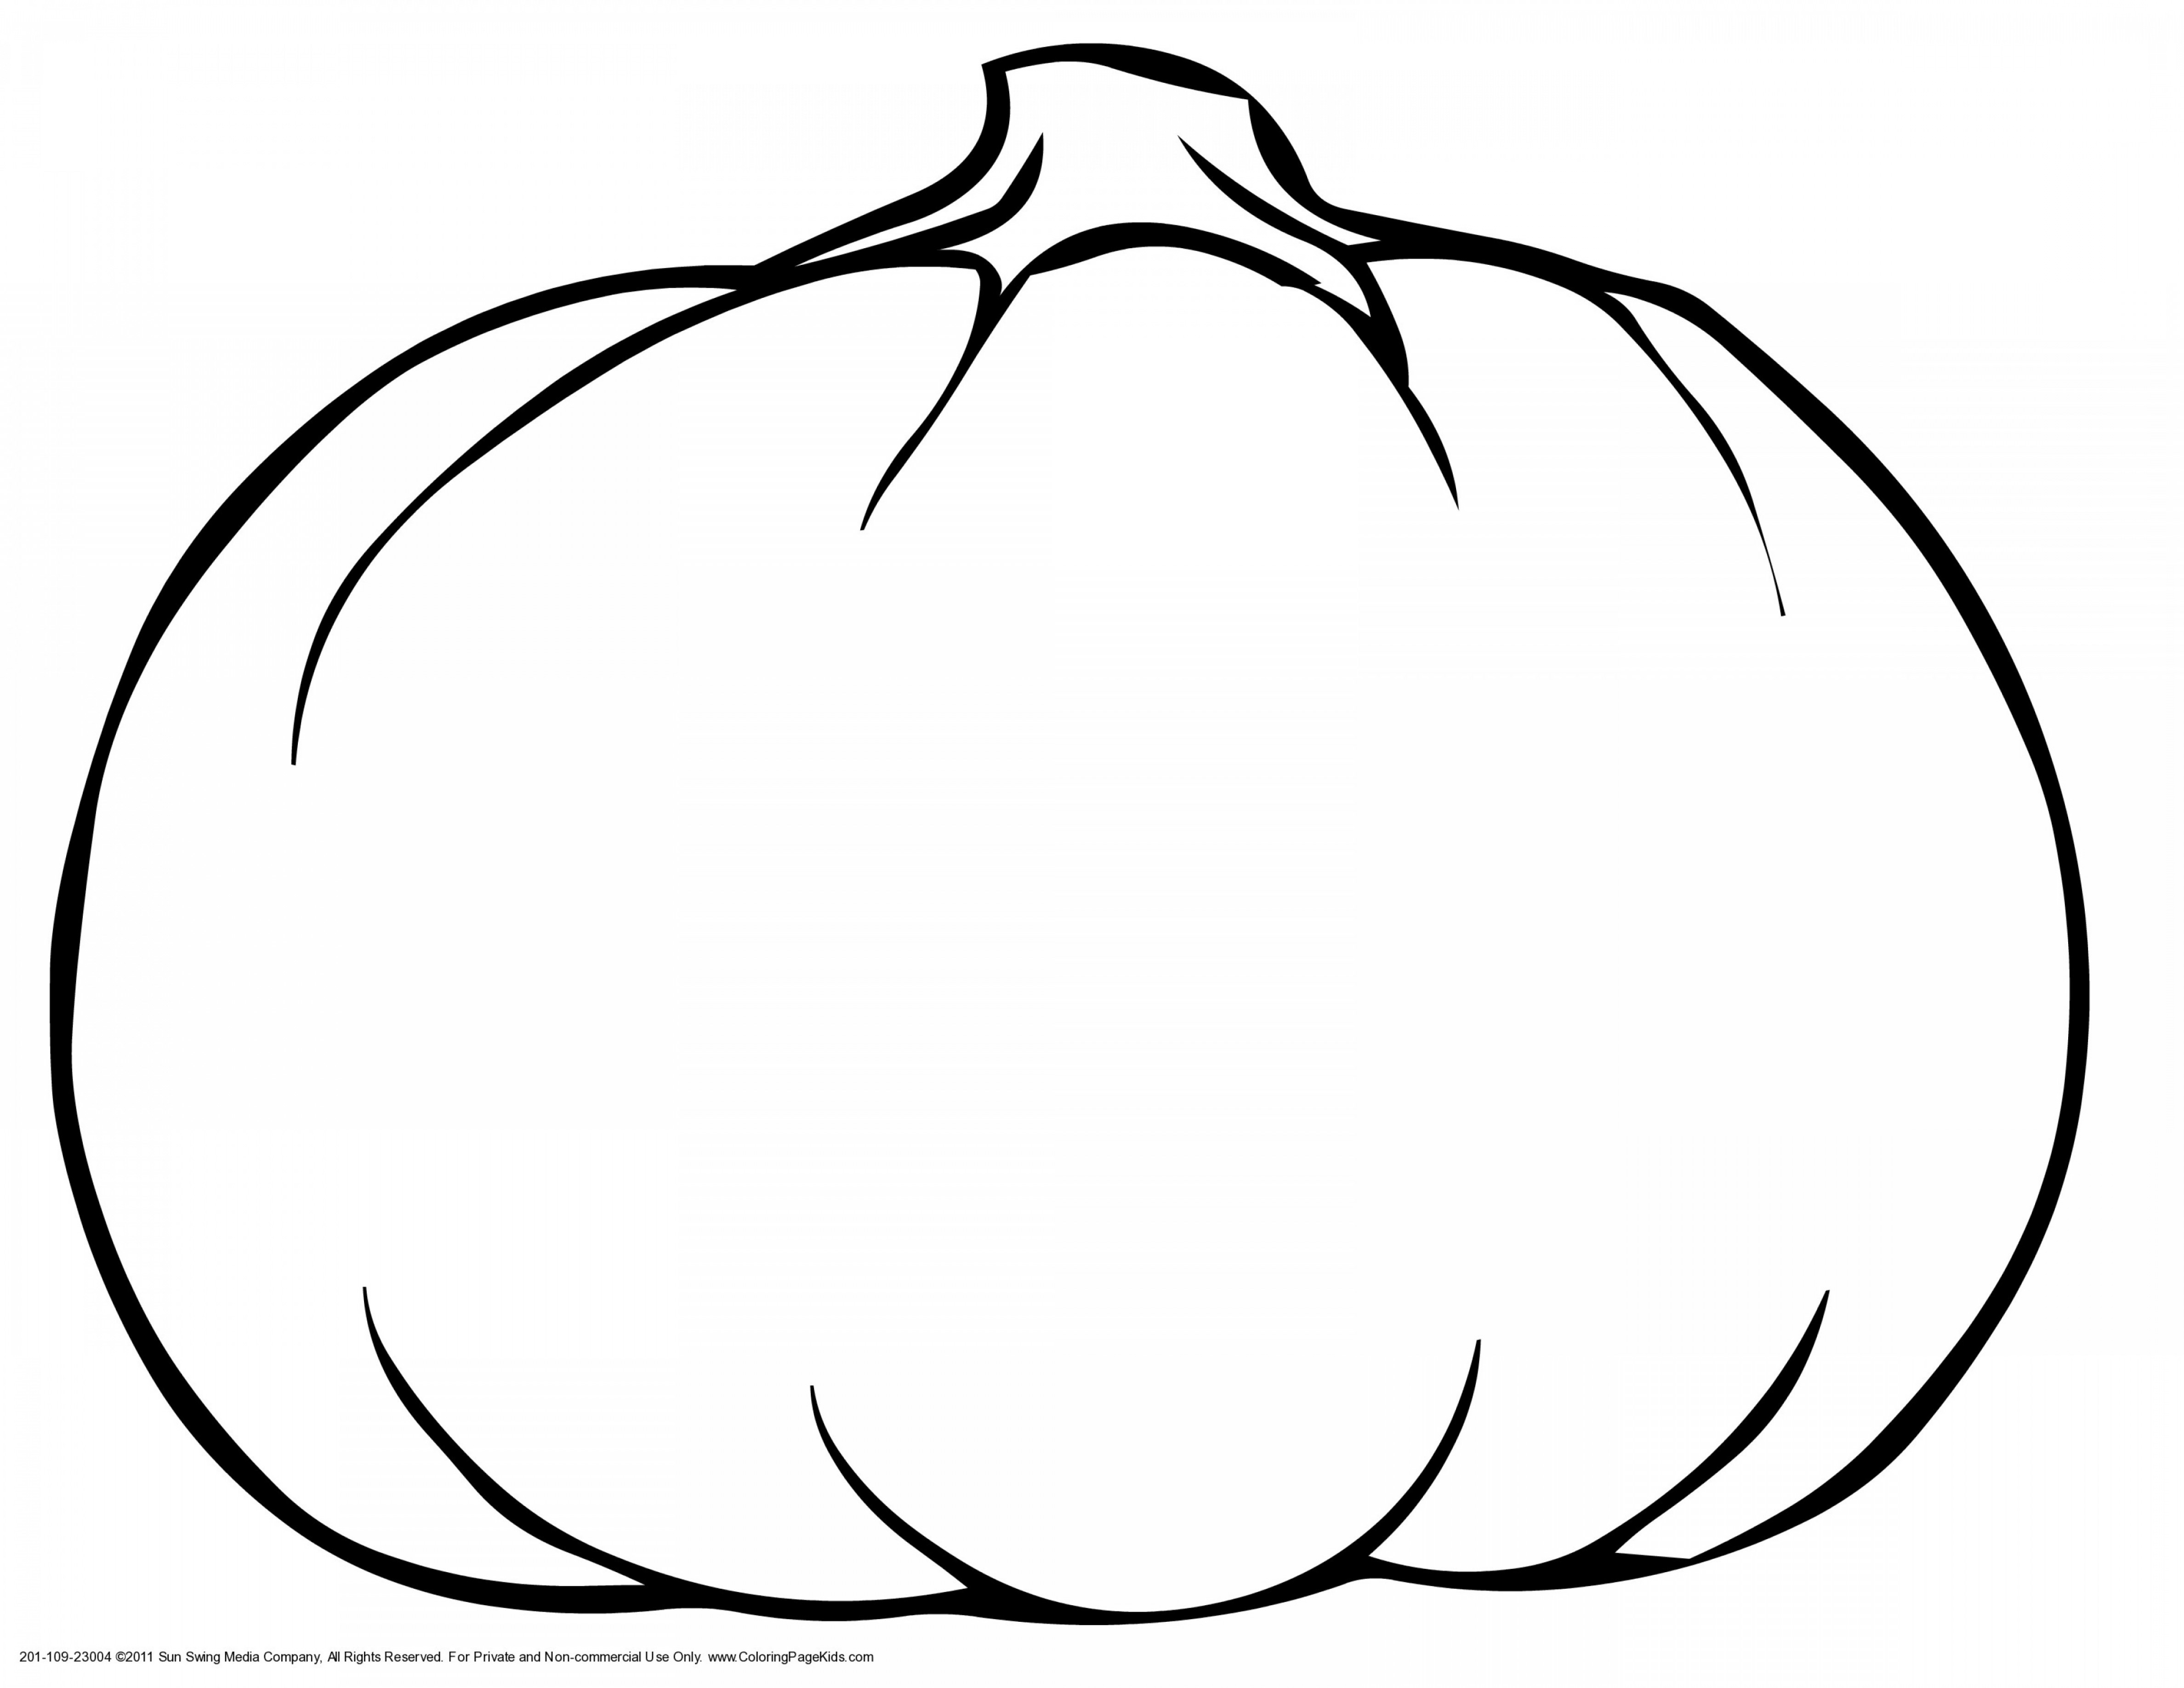 Pumpkin Outline Vector Art: Pumpkin Outline Clipart Black And White